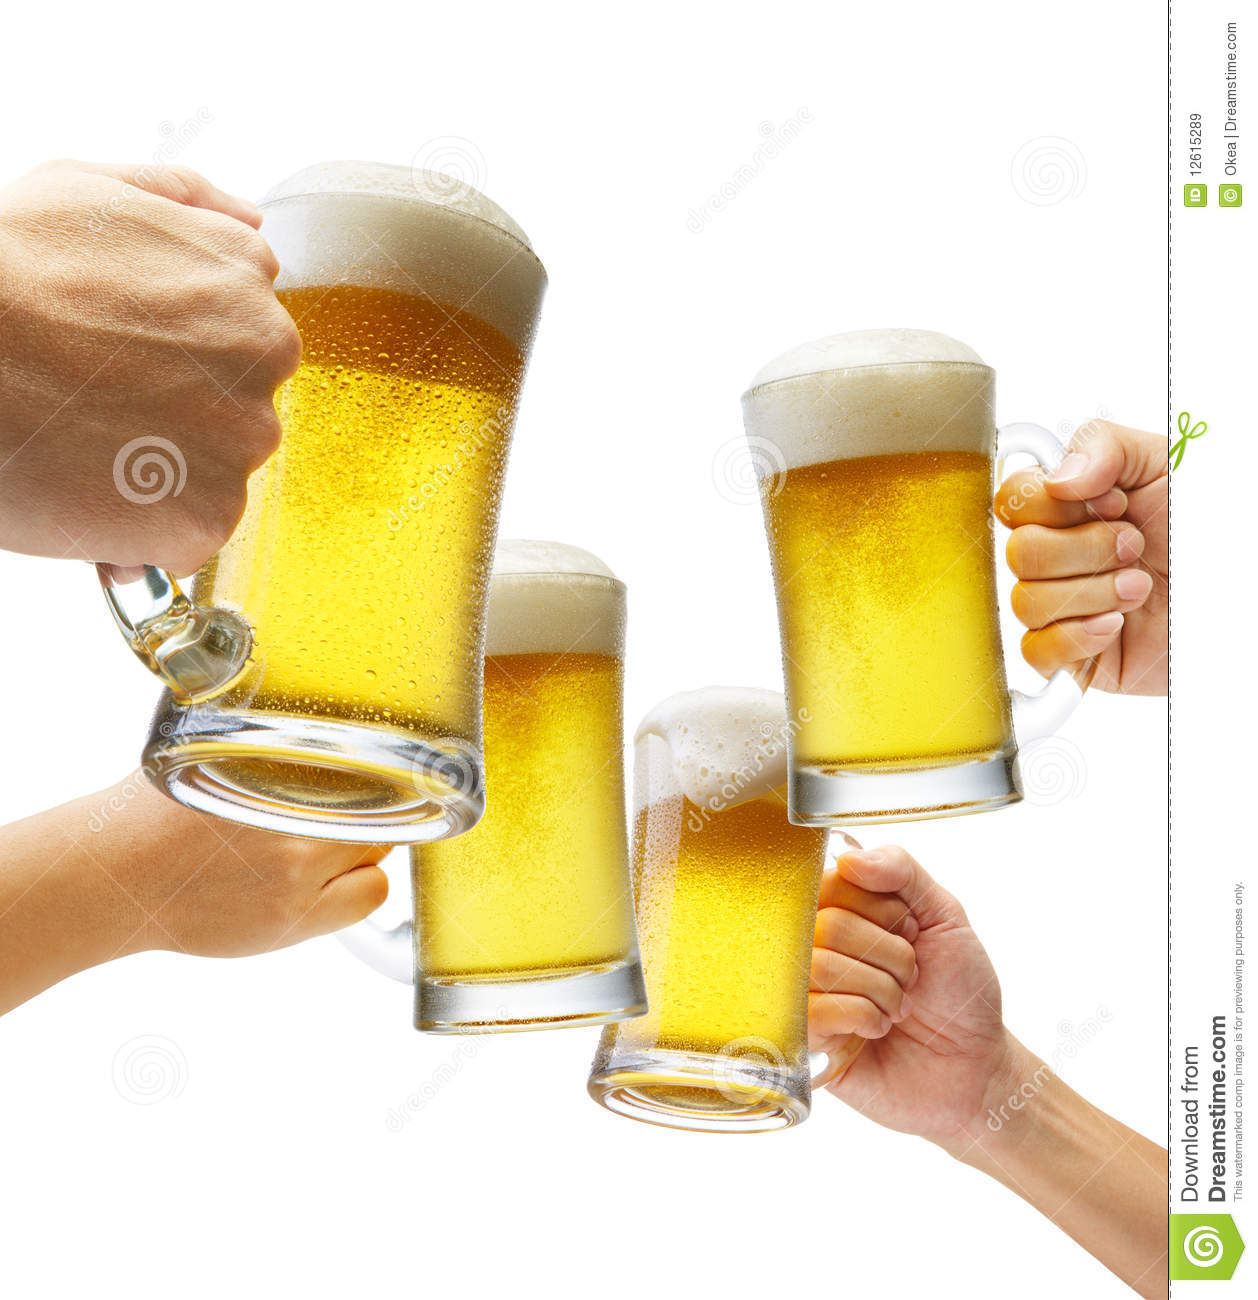 Cheers Royalty Free Stock Images - Image: 12615289